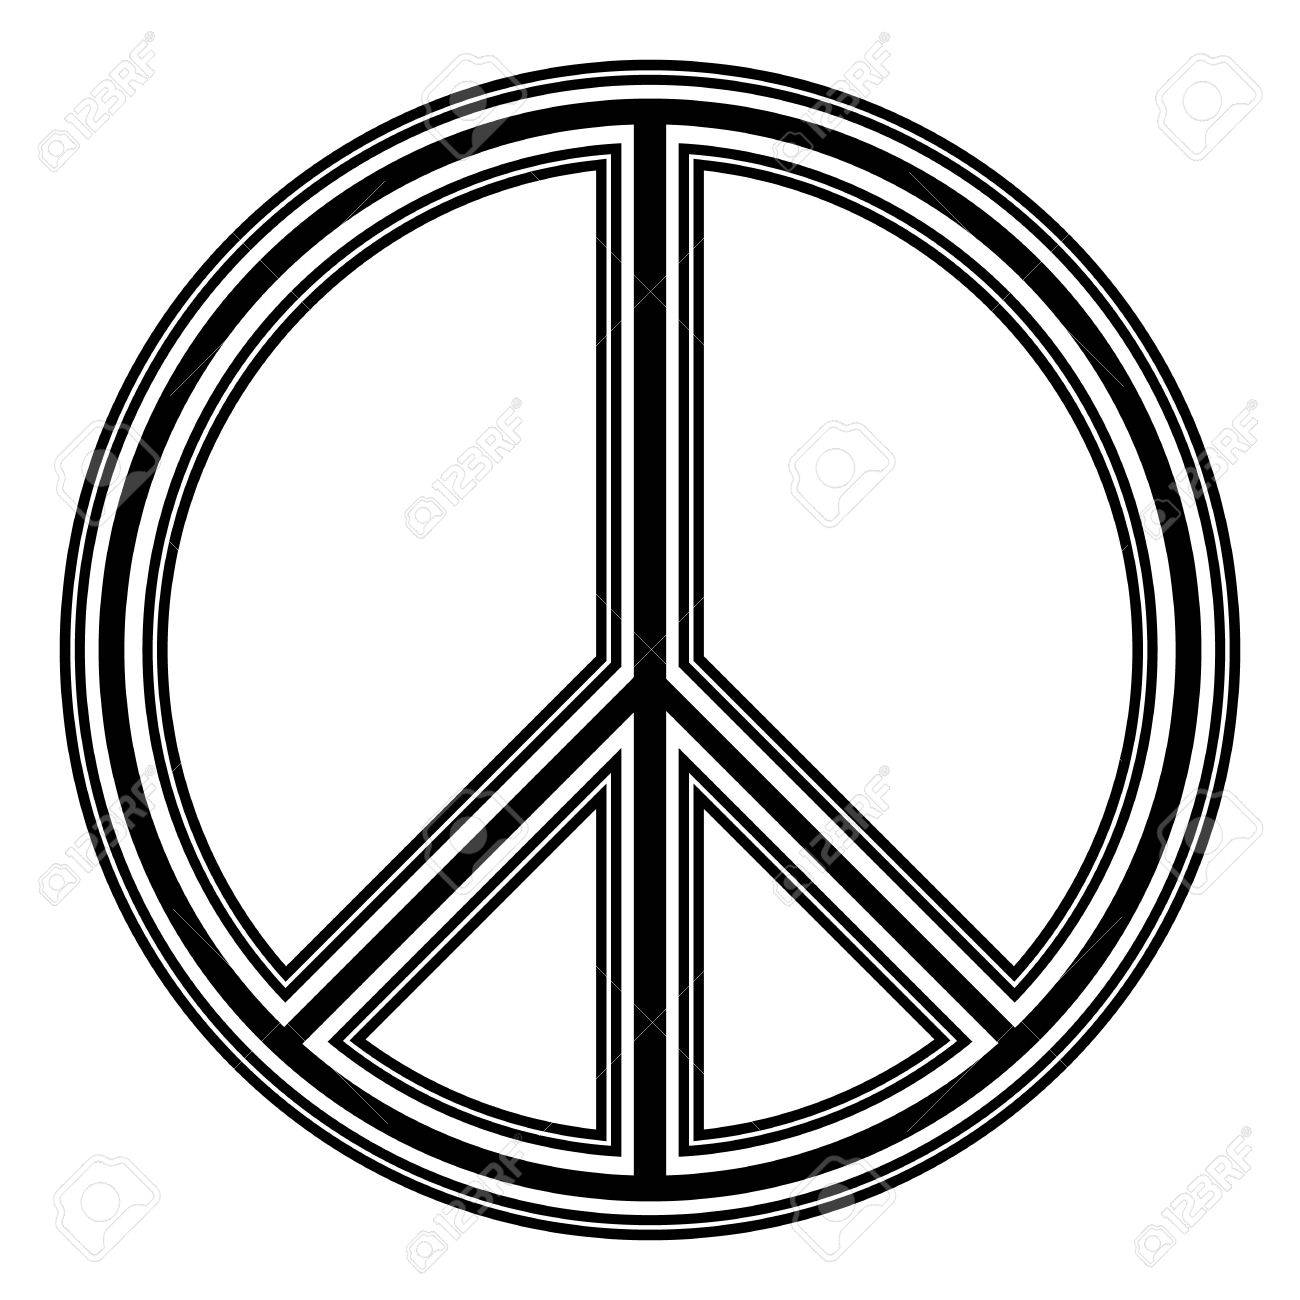 Peace symbol on white background vector illustration royalty free peace symbol on white background vector illustration stock vector 30318279 buycottarizona Choice Image